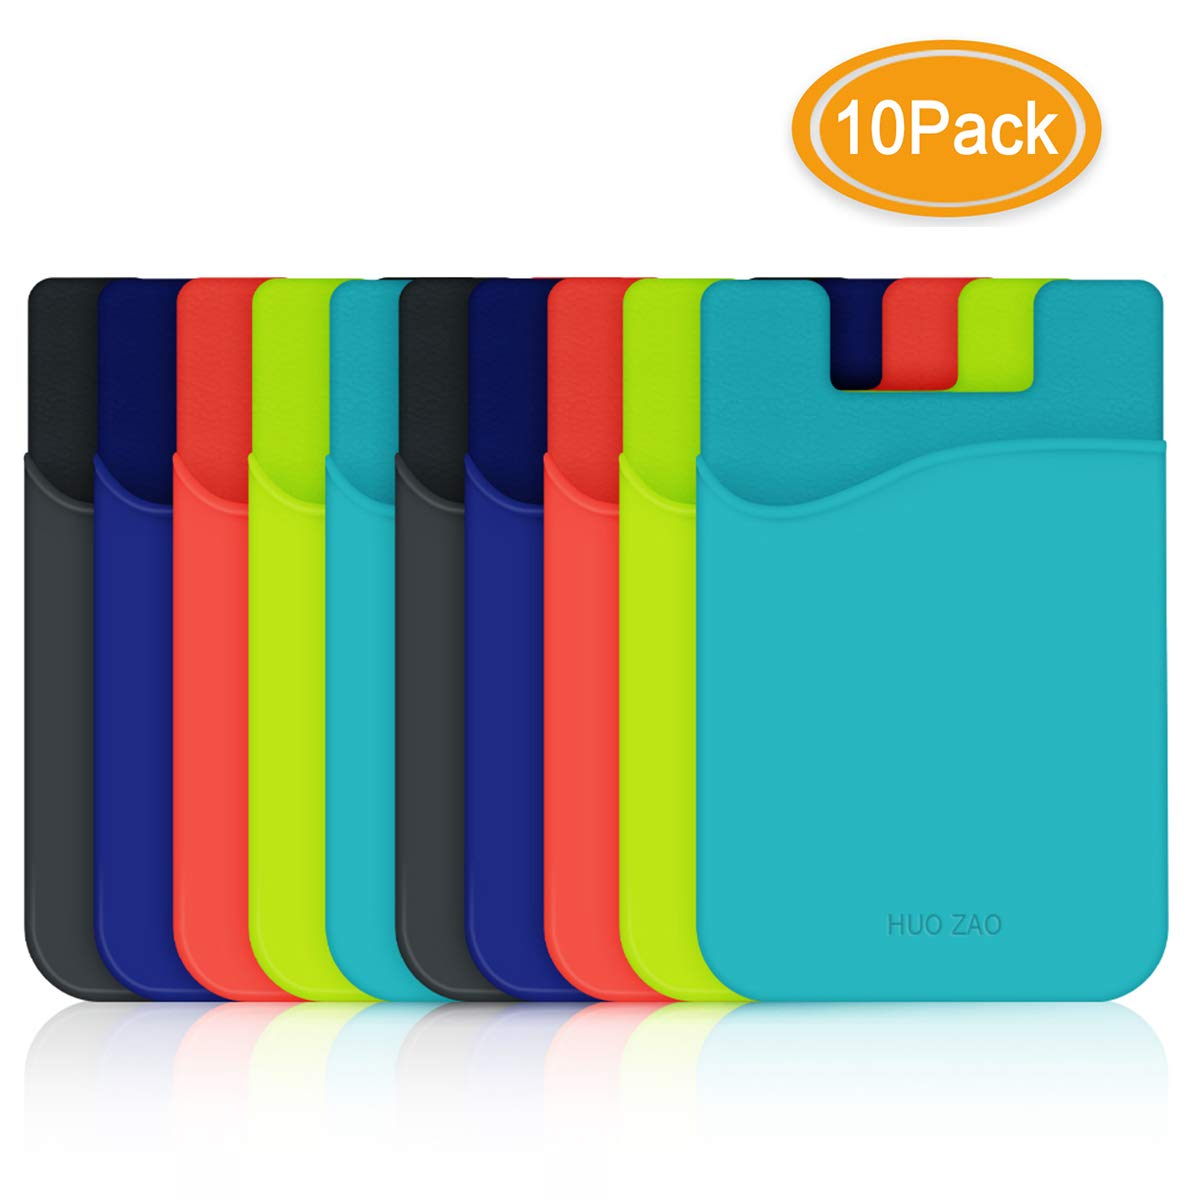 Phone Credit Card Holder, HUO ZAO Silicone Sticky Phone Wallet 3M Adhesive Stick-on Wallet Compatible with Apple iPhone Samsung Galaxy Android Cell Phone Table Multi Colors - 10 Pack